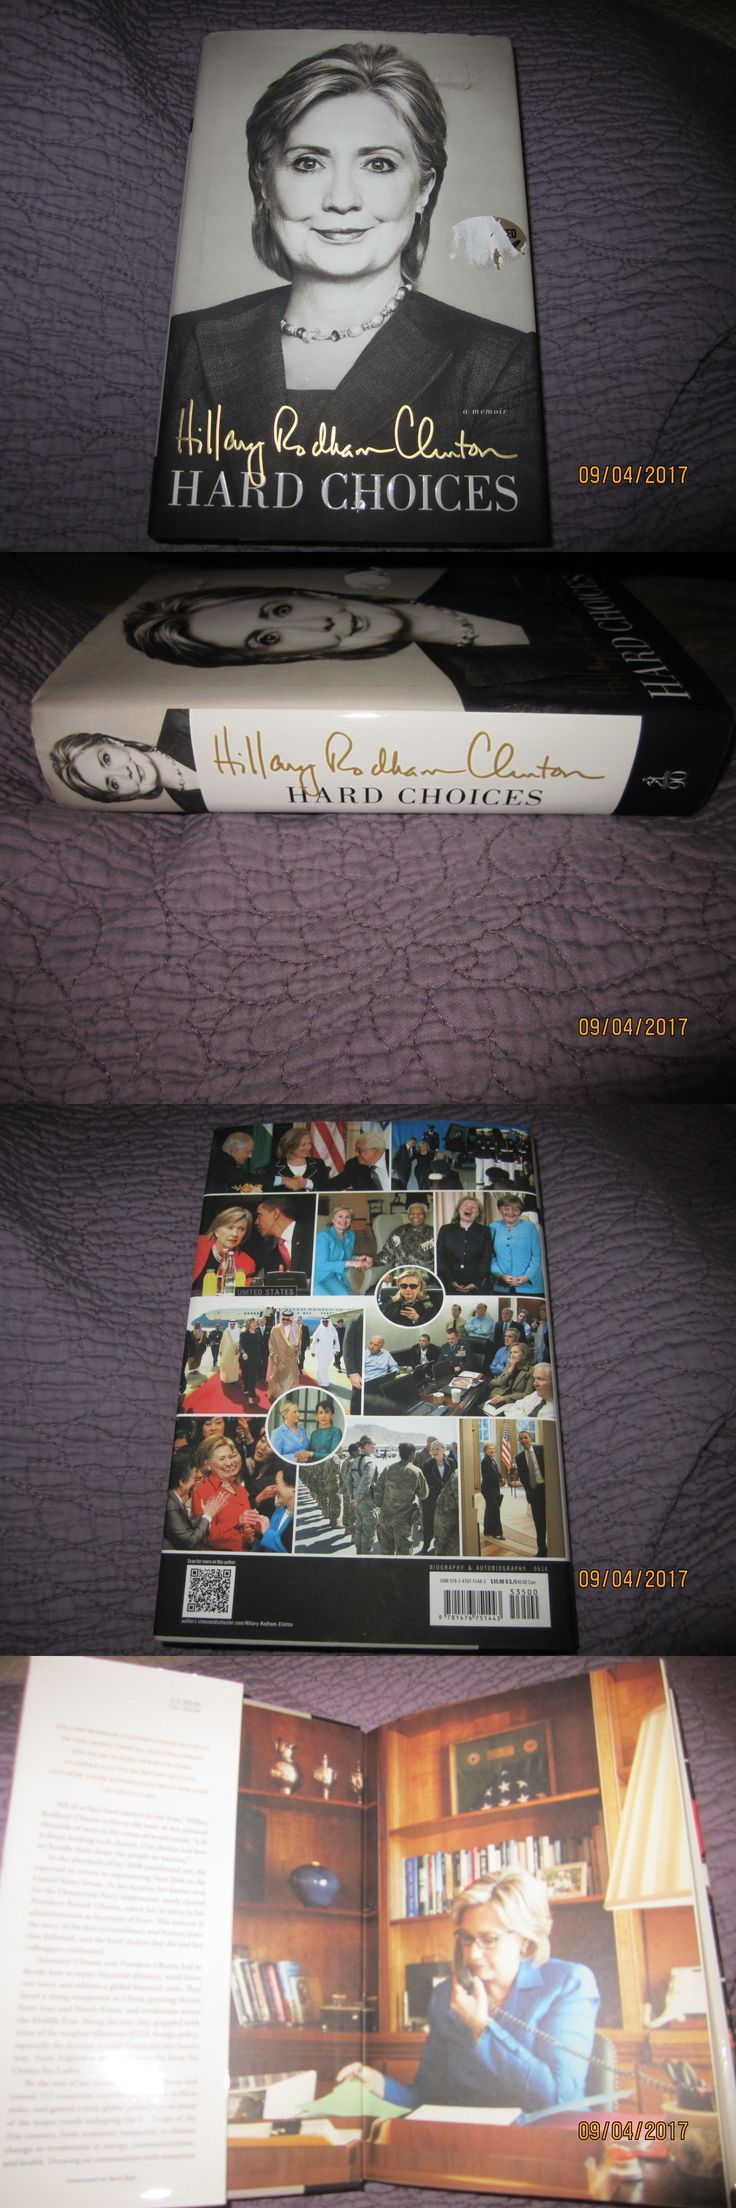 Hillary Clinton: Signed Hillary Rodham Clinton - Hard Choices Hardcover Book Autographed Proof -> BUY IT NOW ONLY: $39.95 on eBay!